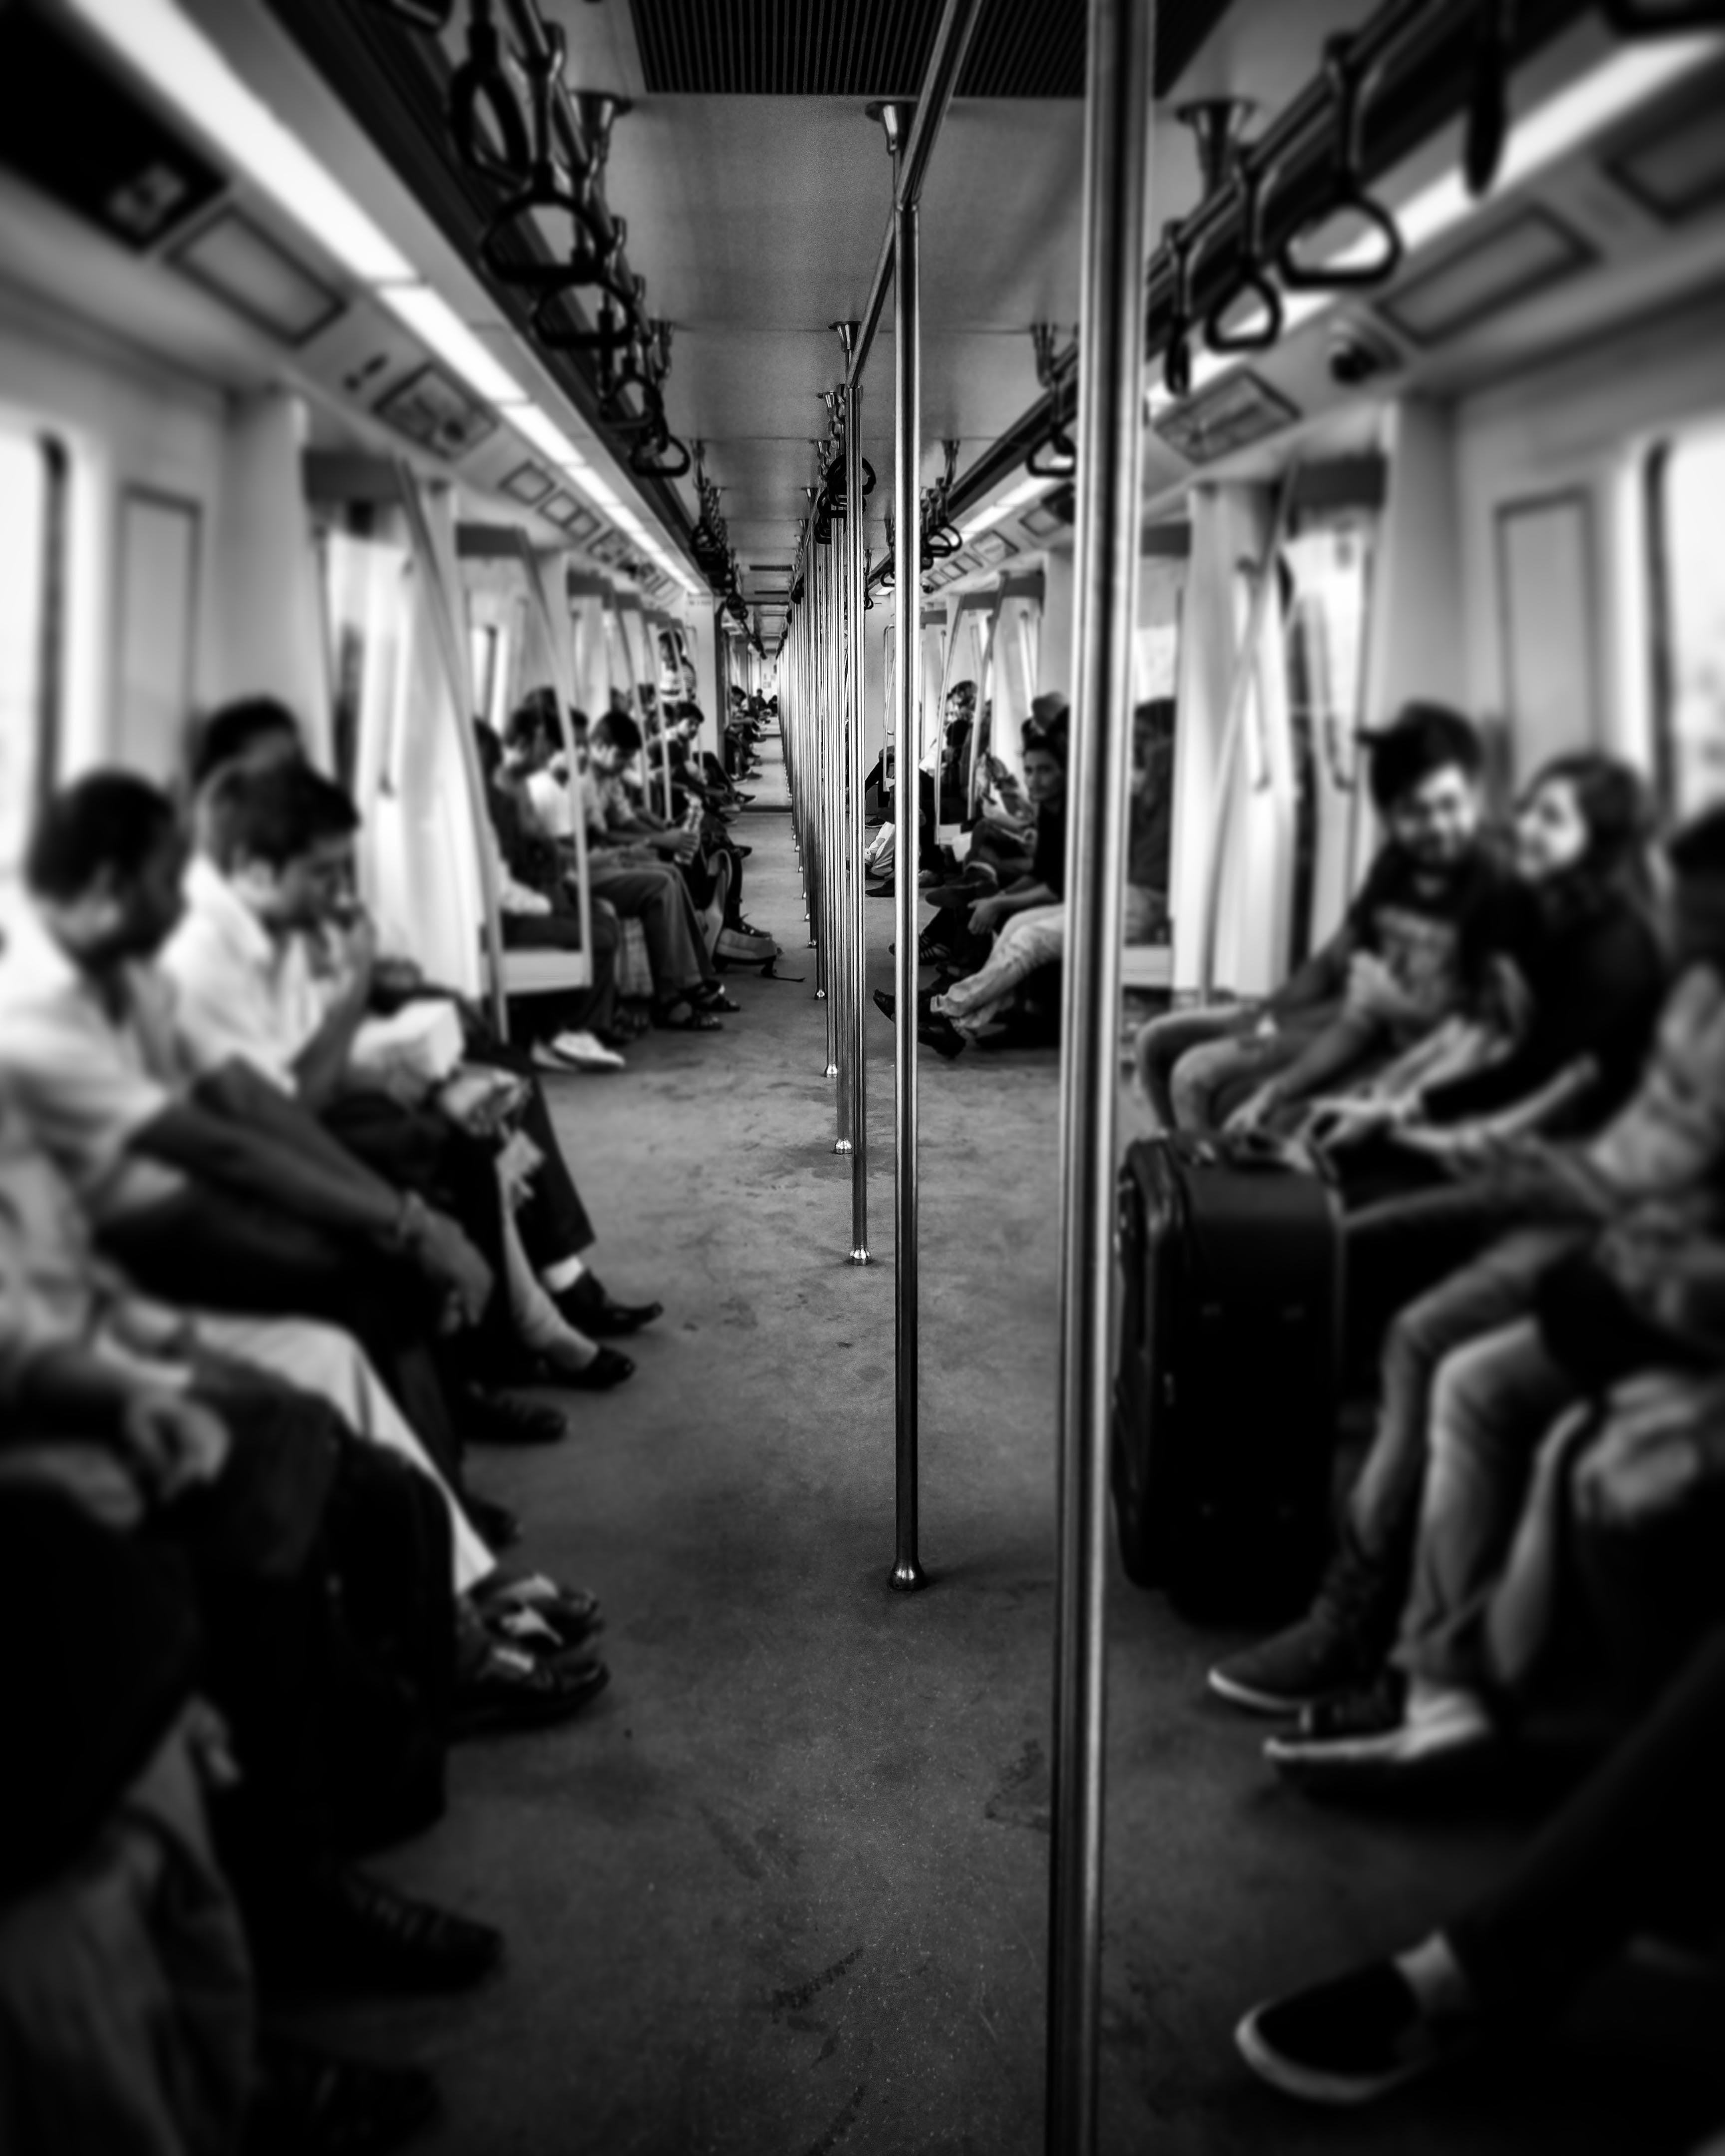 Grayscale Photography of Train Passengers